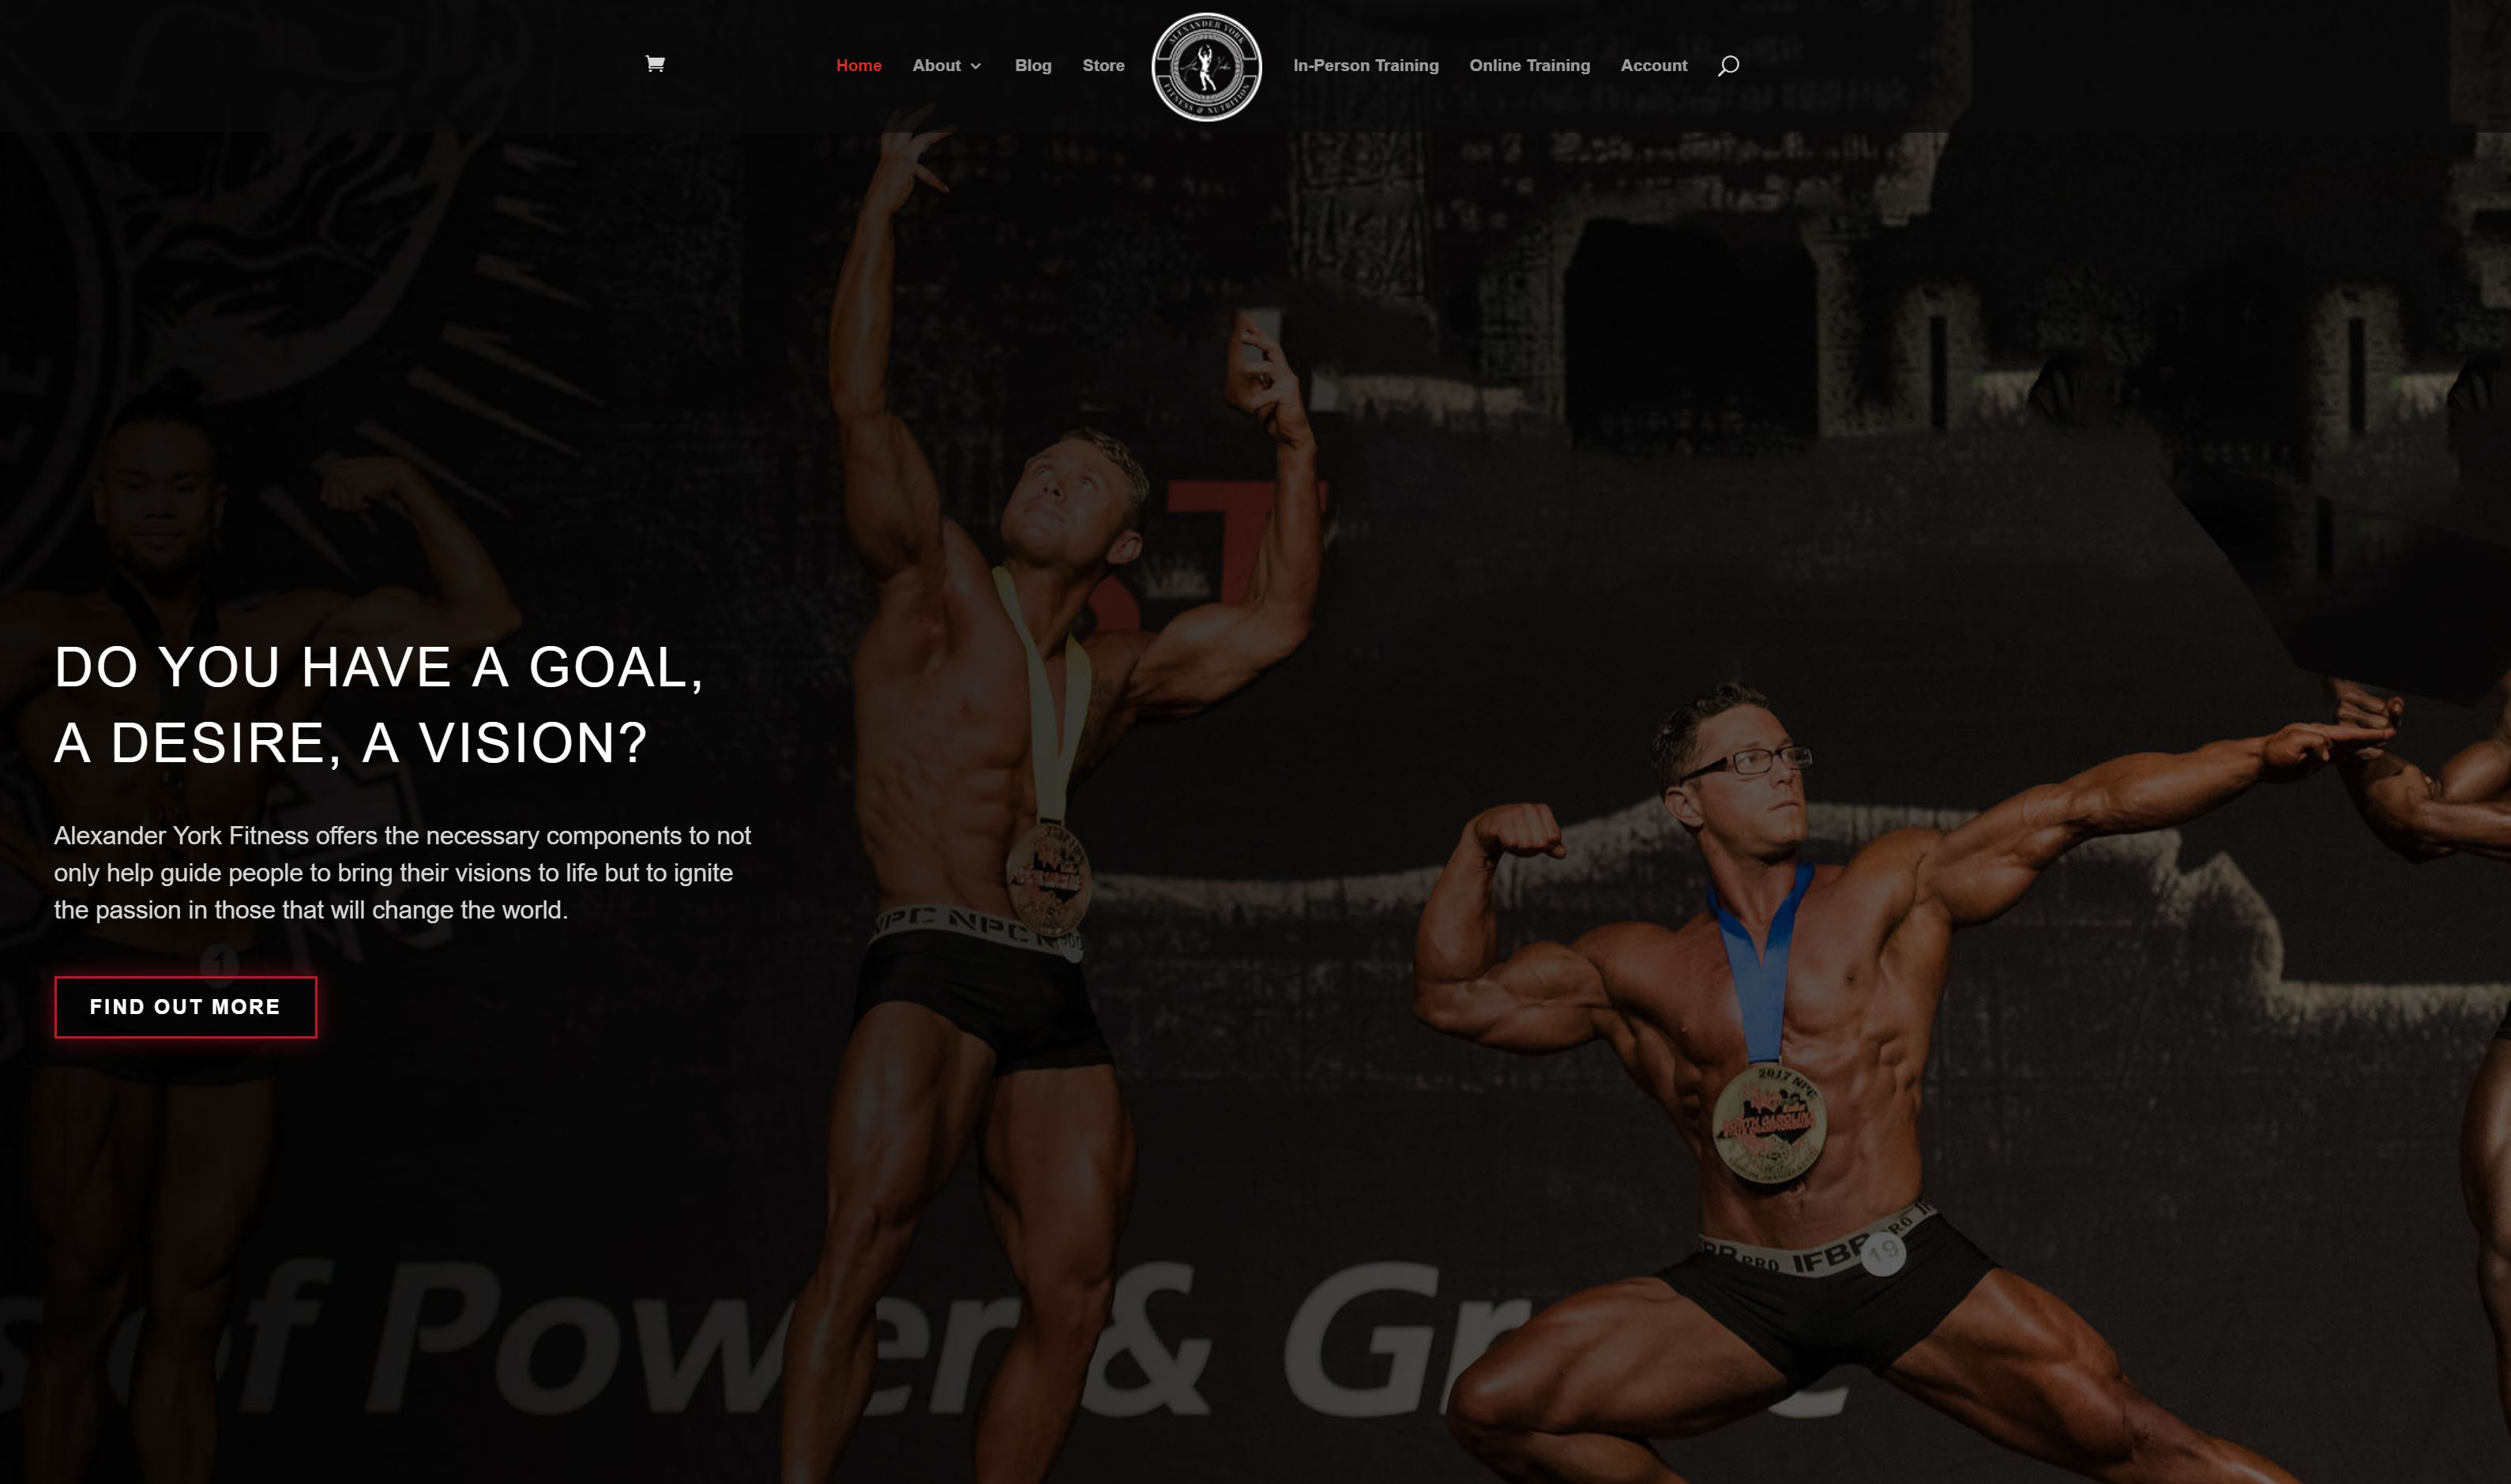 Alexander York Fitness homepage preview